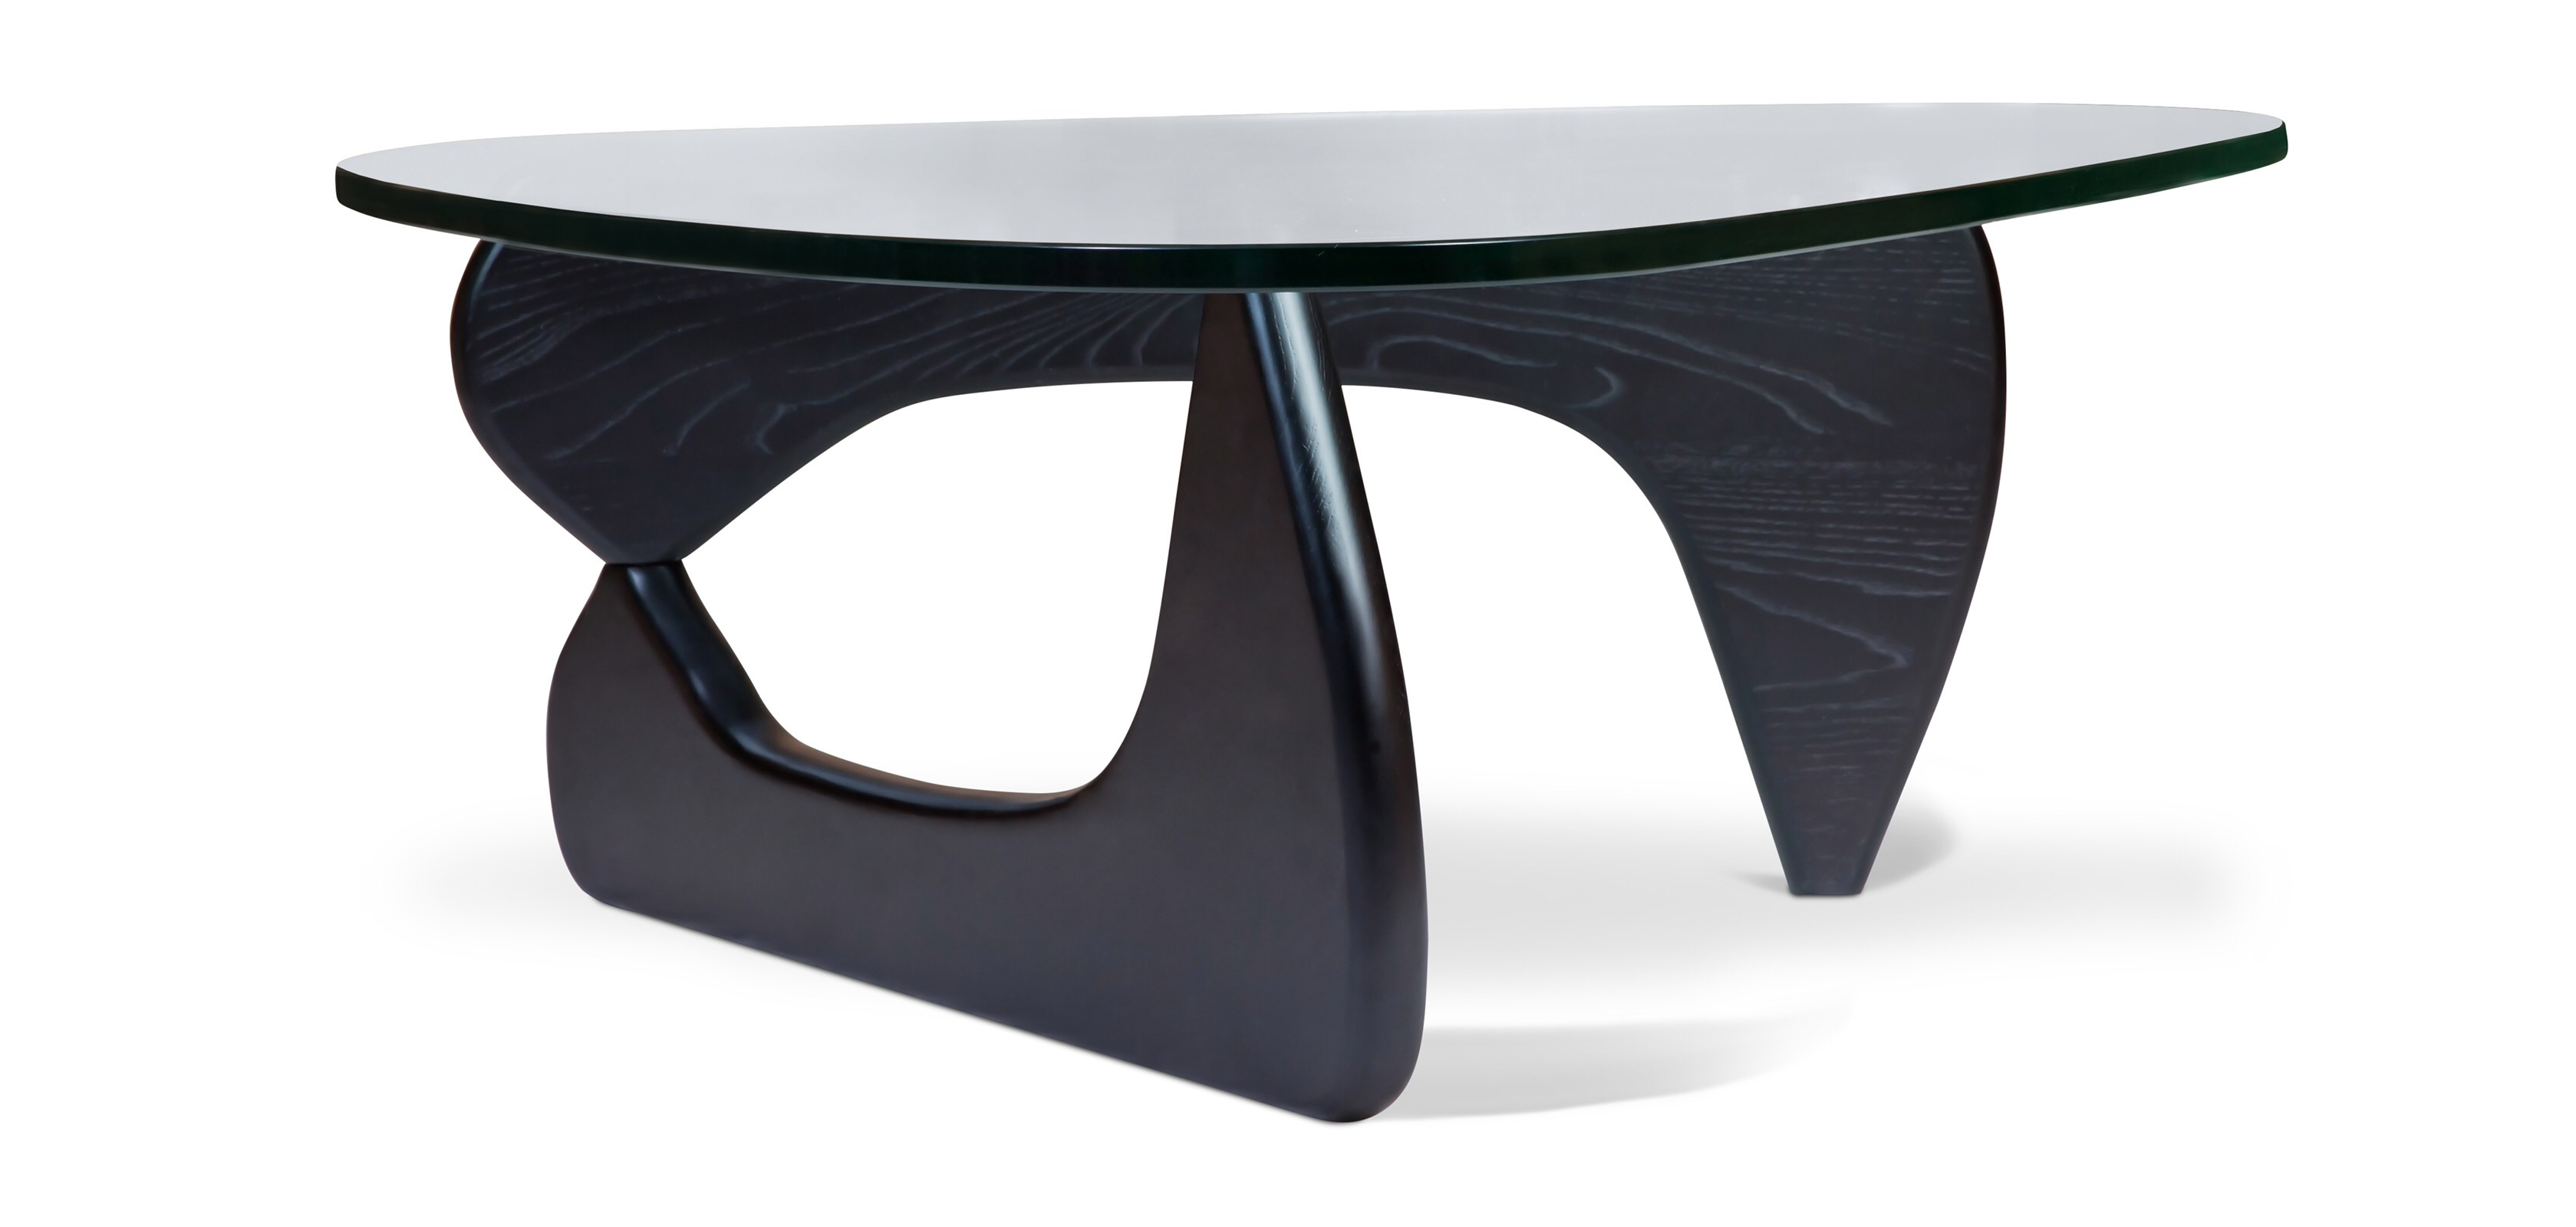 Noguchi Style Coffee Table 19mm Glass Top With Walnut Oak Or Black Base Specialist Furniture